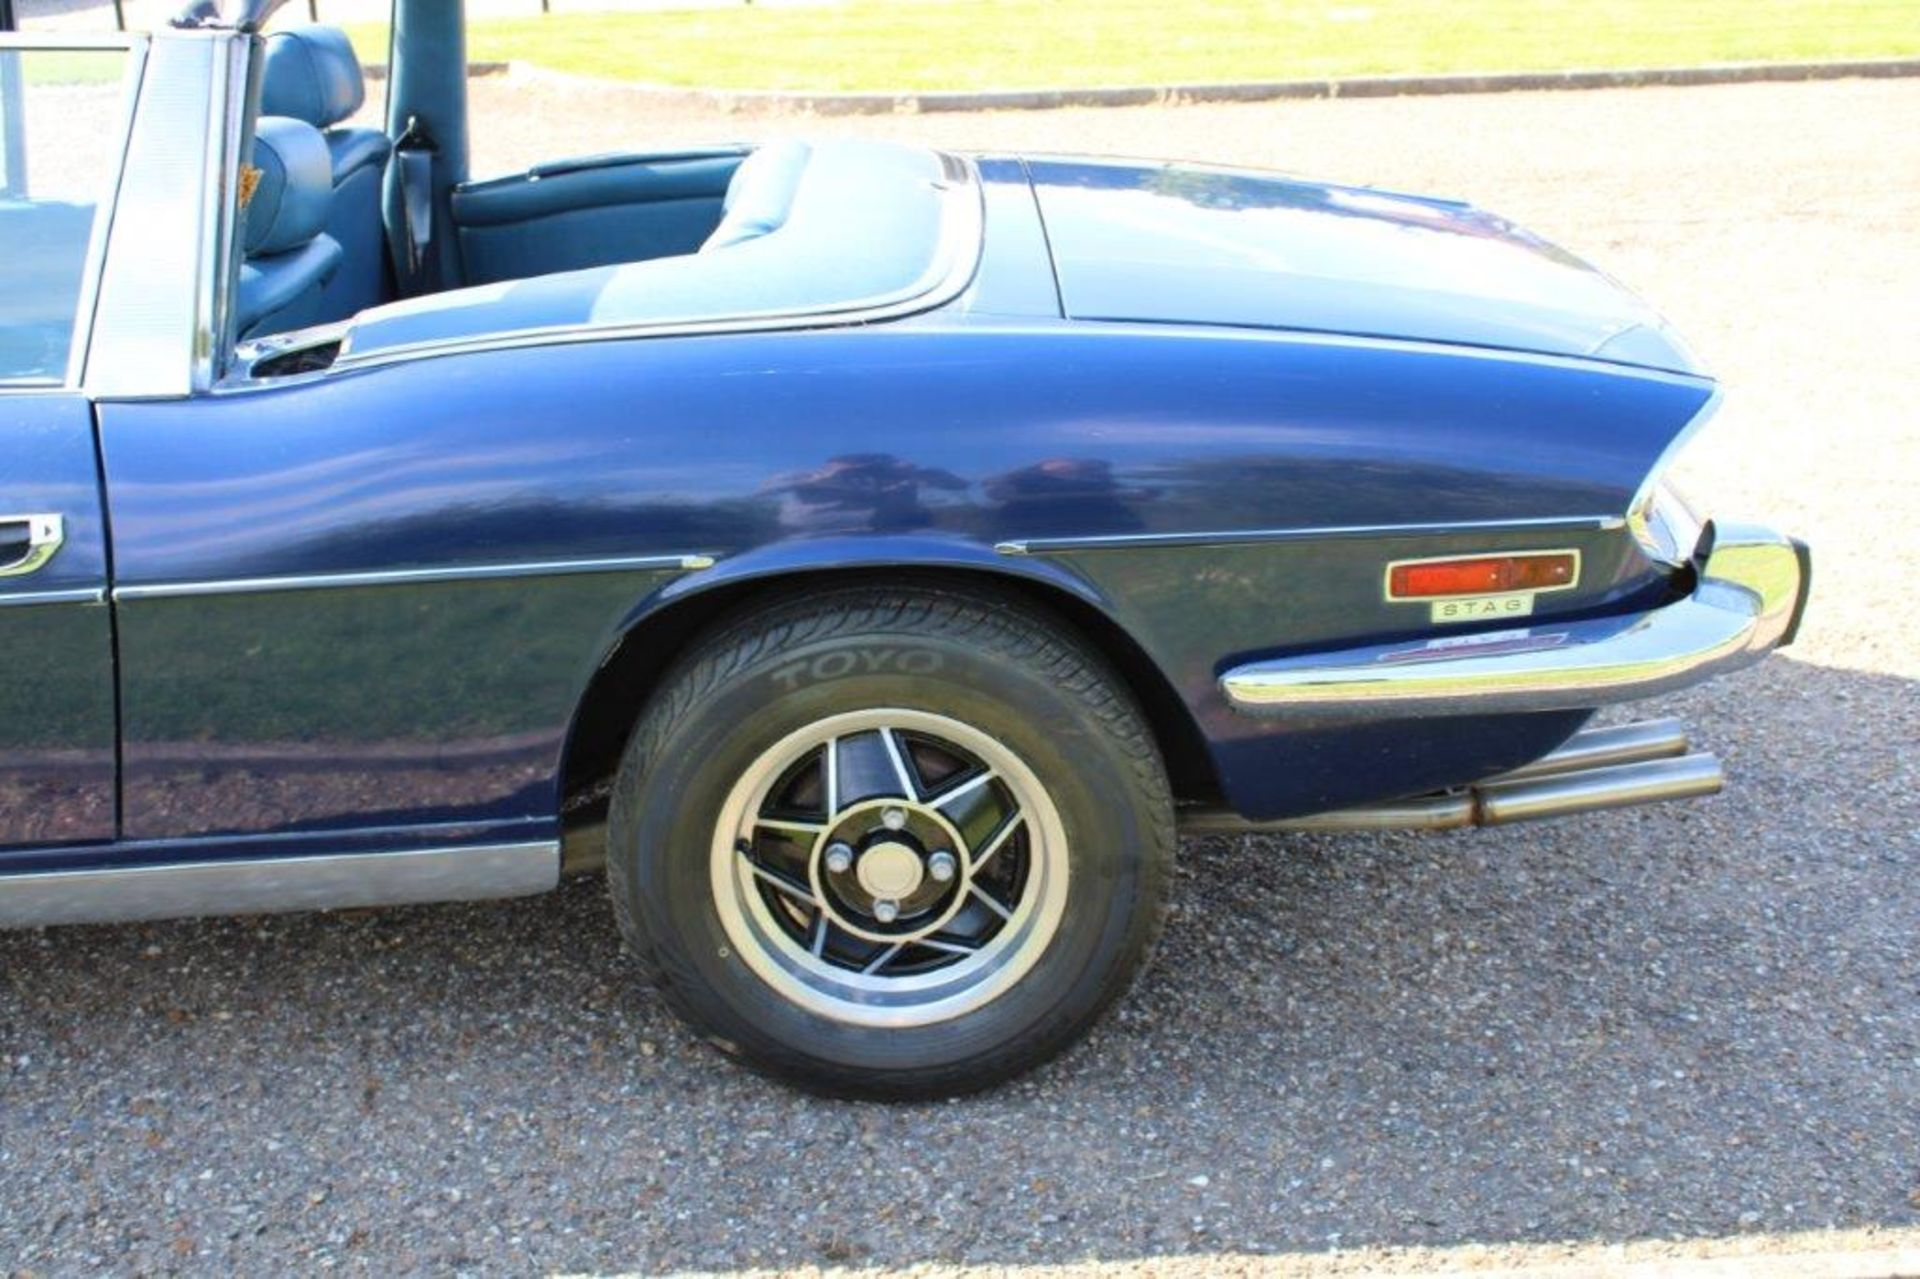 1973 Triumph Stag 3.0 LHD - Image 5 of 28